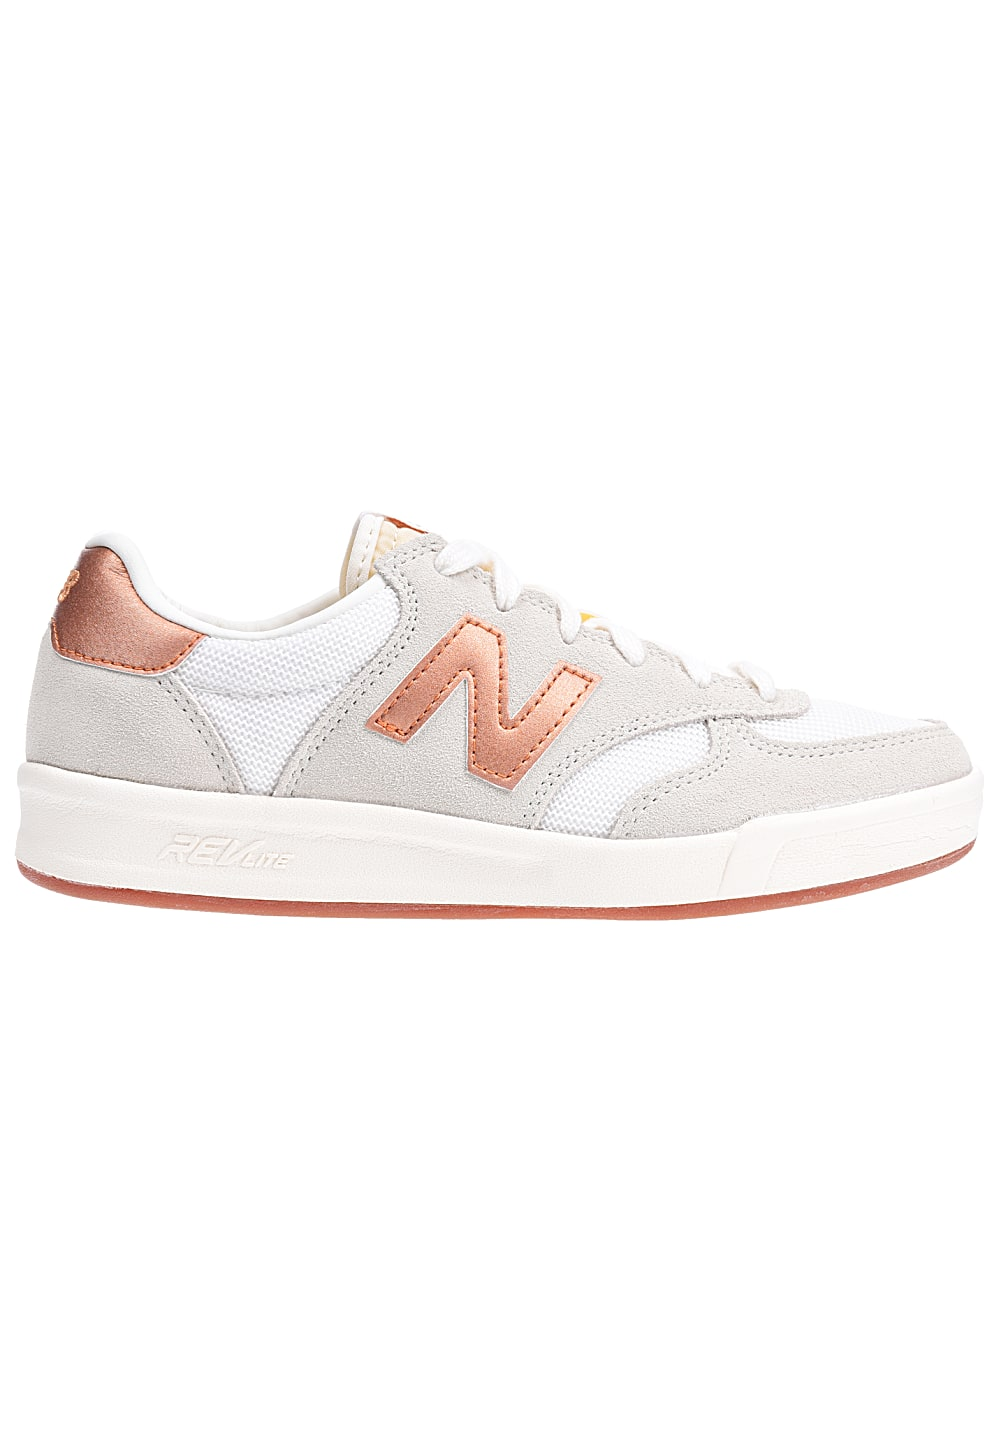 NEW BALANCE WRT300 B - Sneaker für Damen - Weiß - Planet Sports